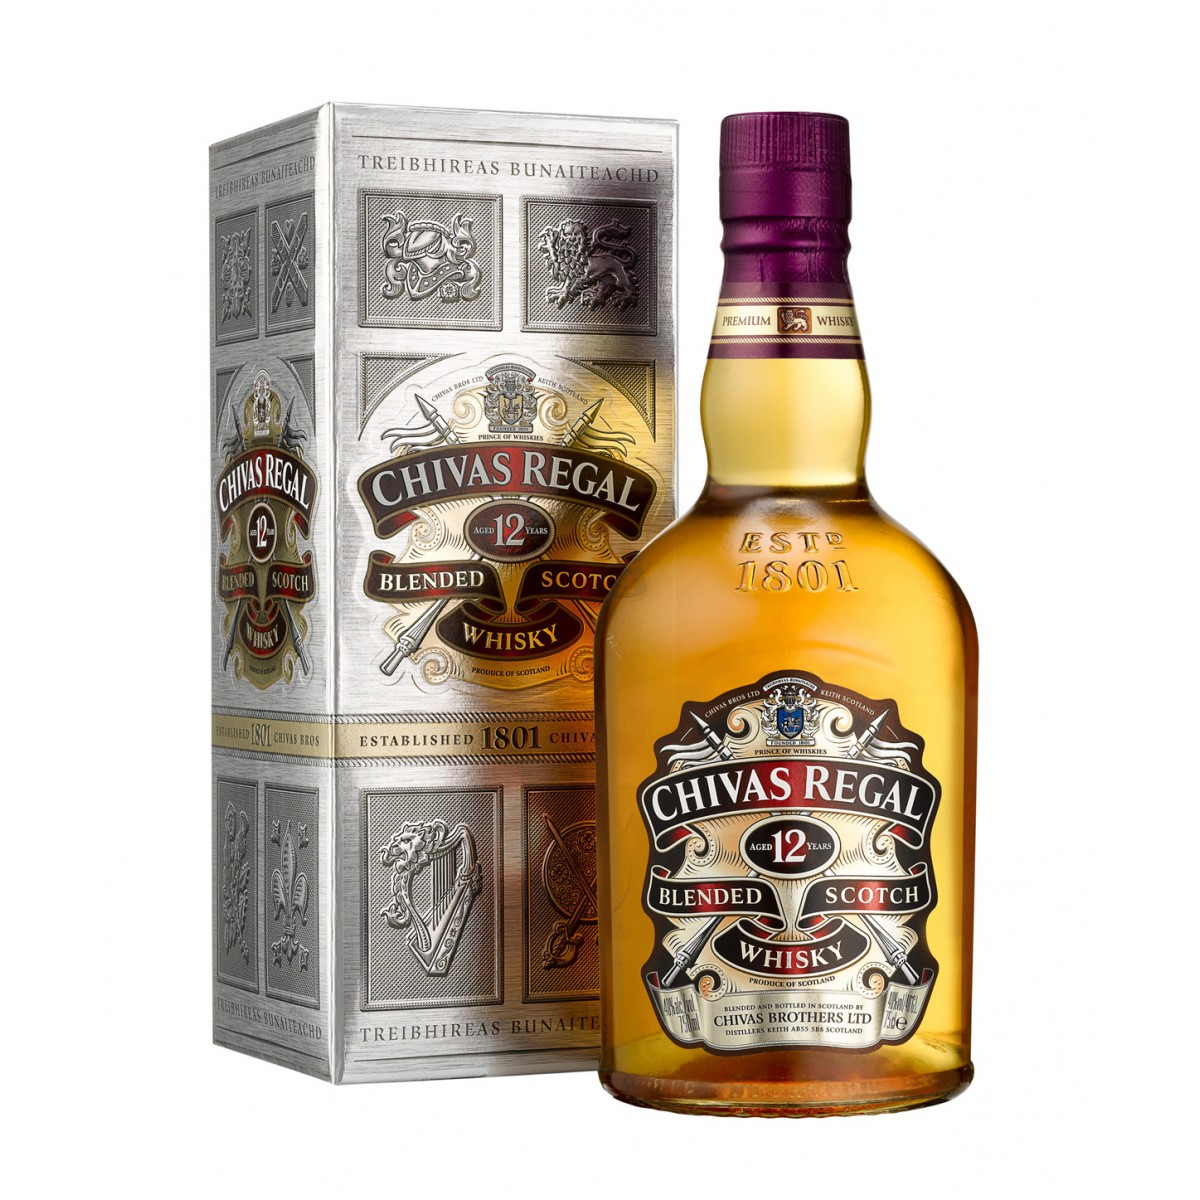 70cl Chivas Regal 12YO Whisky Bottle